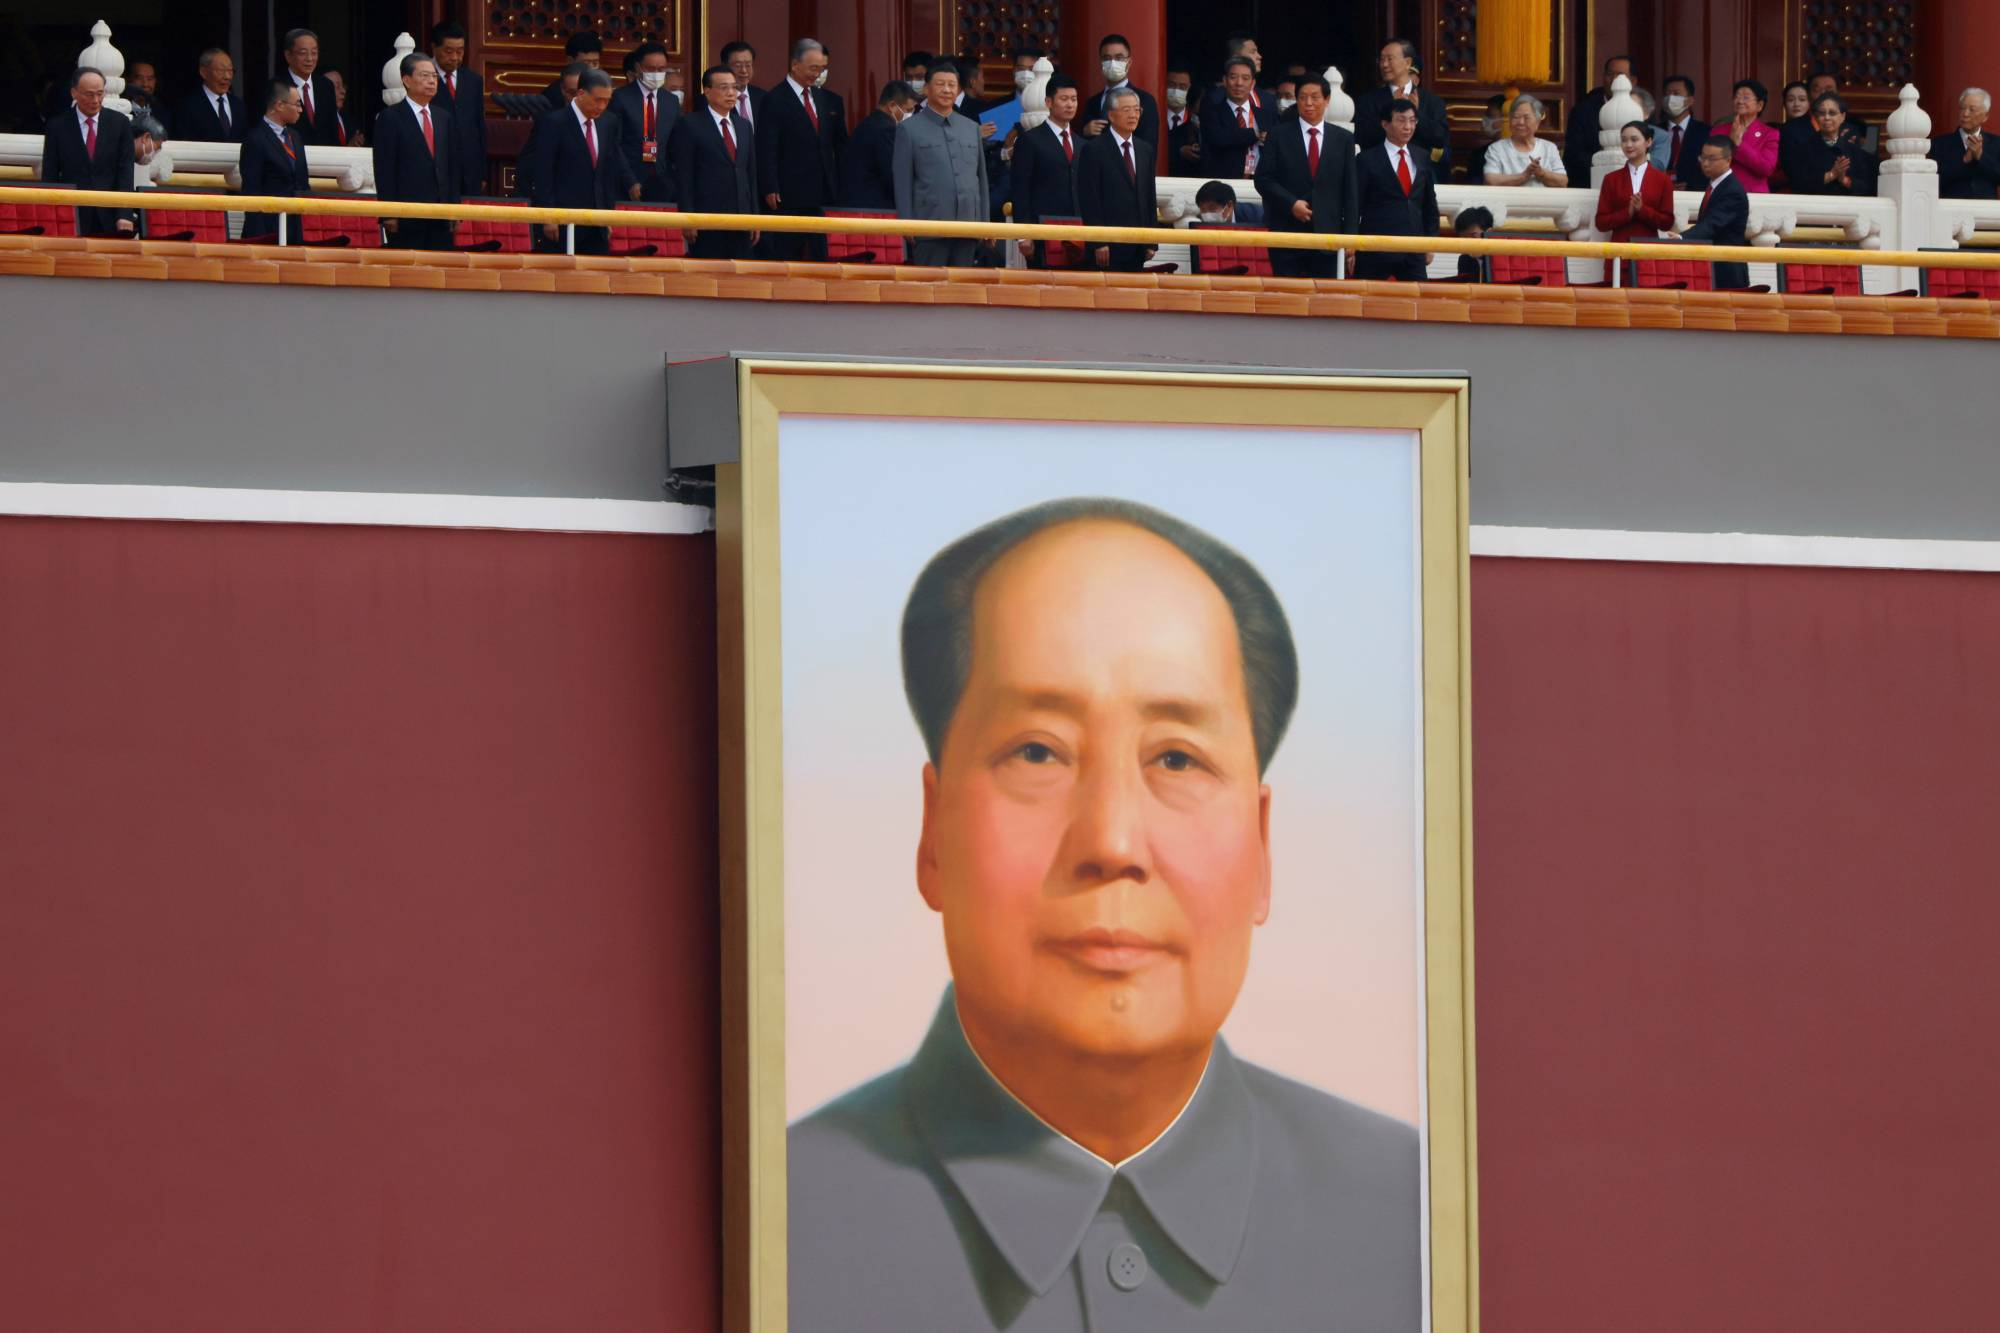 Chinese President Xi Jinping and other leaders stand above a giant portrait of late Chinese Chairman Mao Zedong on July 1. | REUTERS